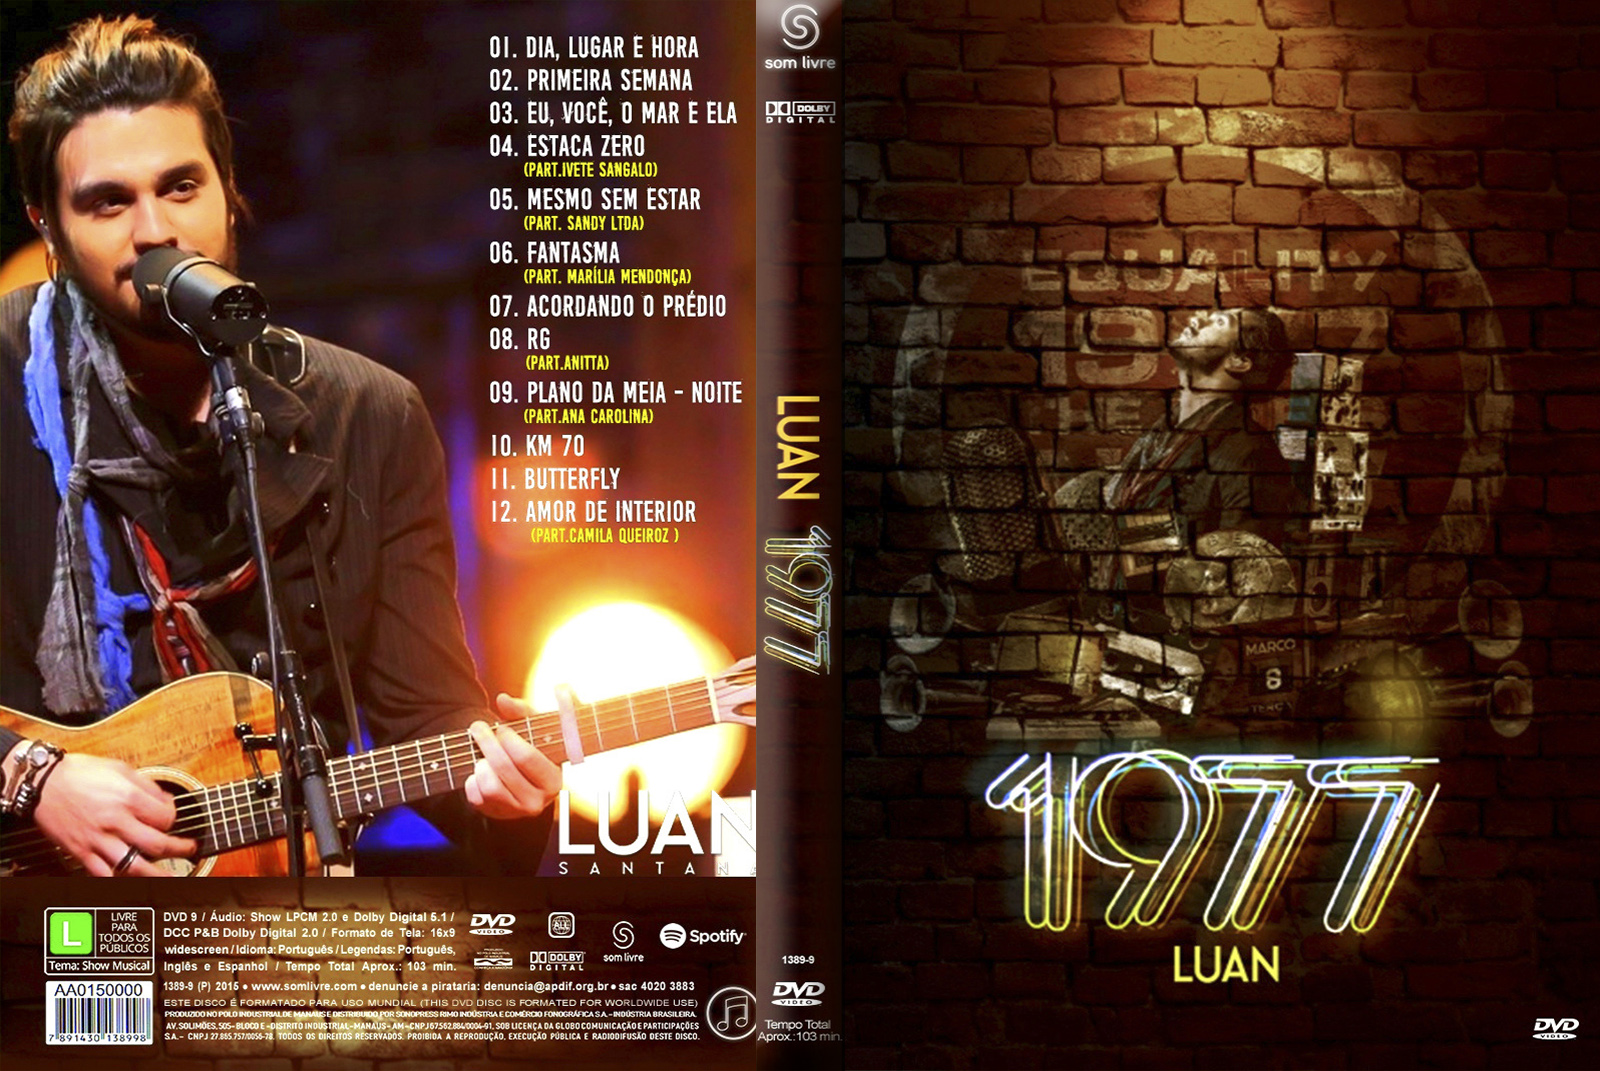 Download Luan Santana 1977 DVDRip 2016 Download Luan Santana 1977 DVDRip 2016 Luan 2BSantana 2B  2B1977